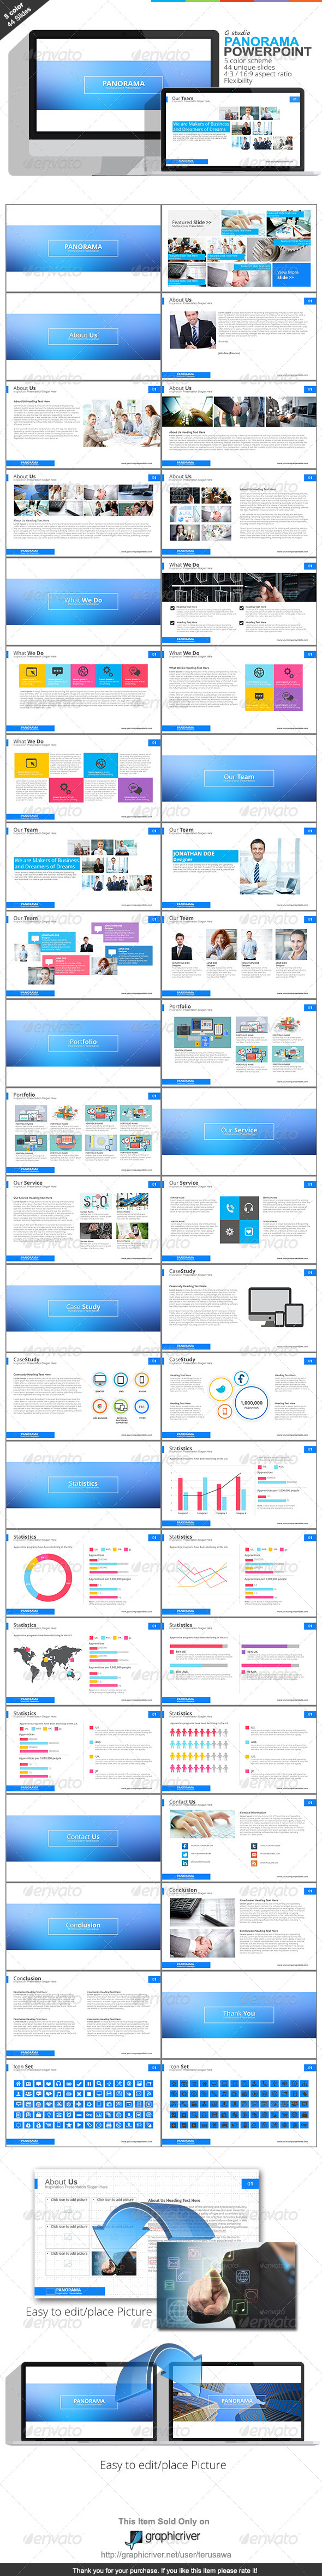 GraphicRiver Gstudio Panorama Powerpoint Template 7741350